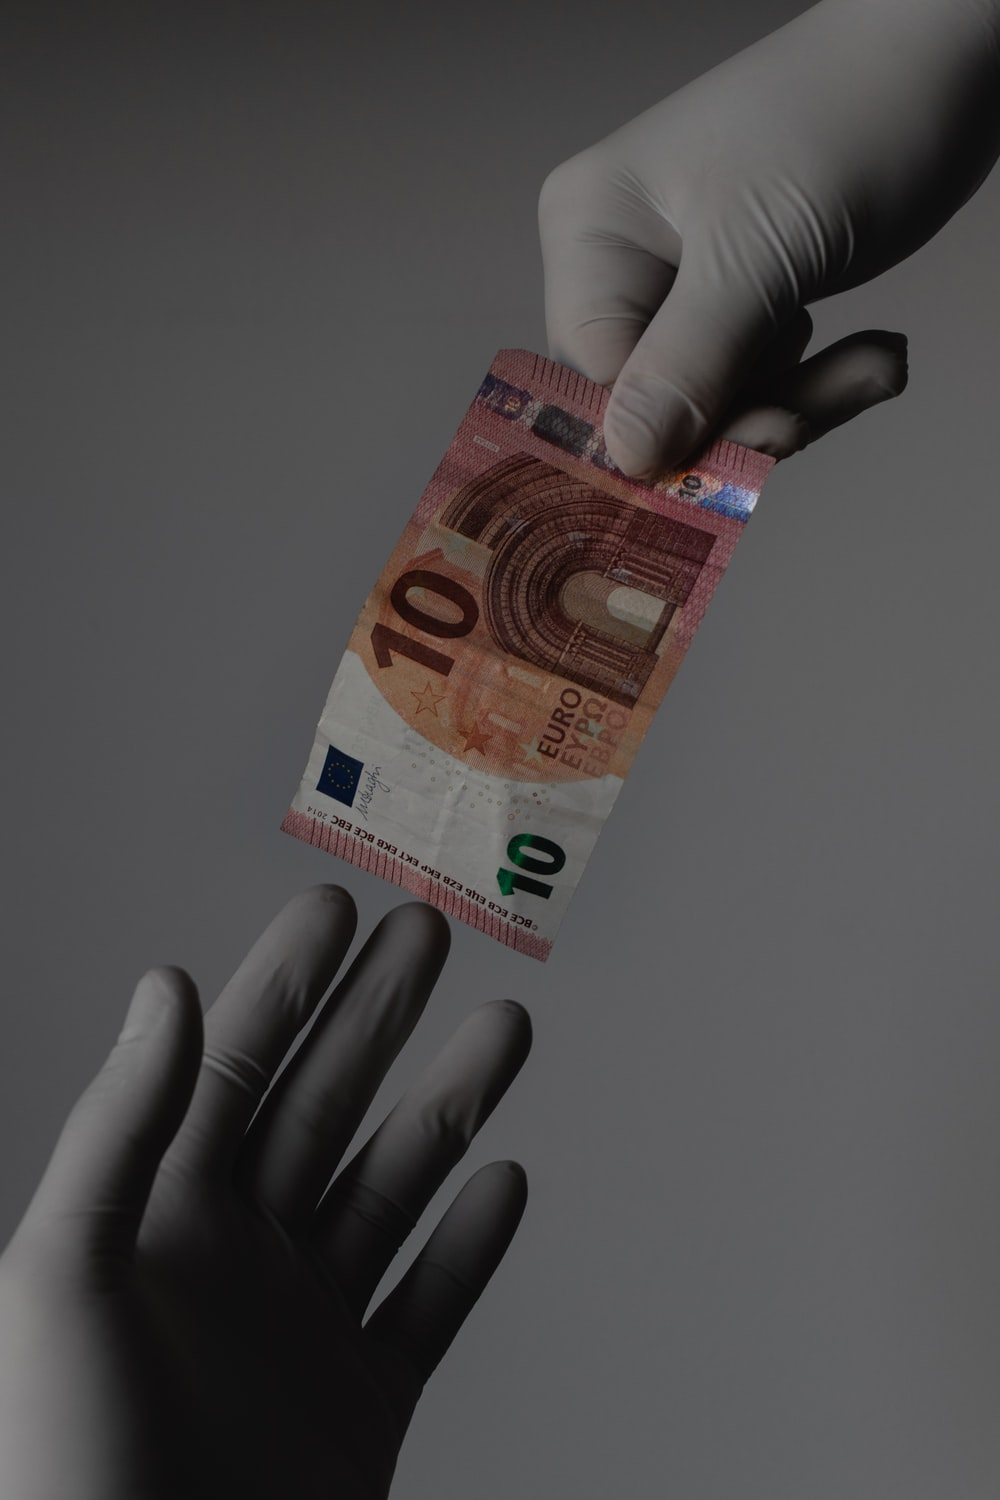 10 euro bill on persons hand